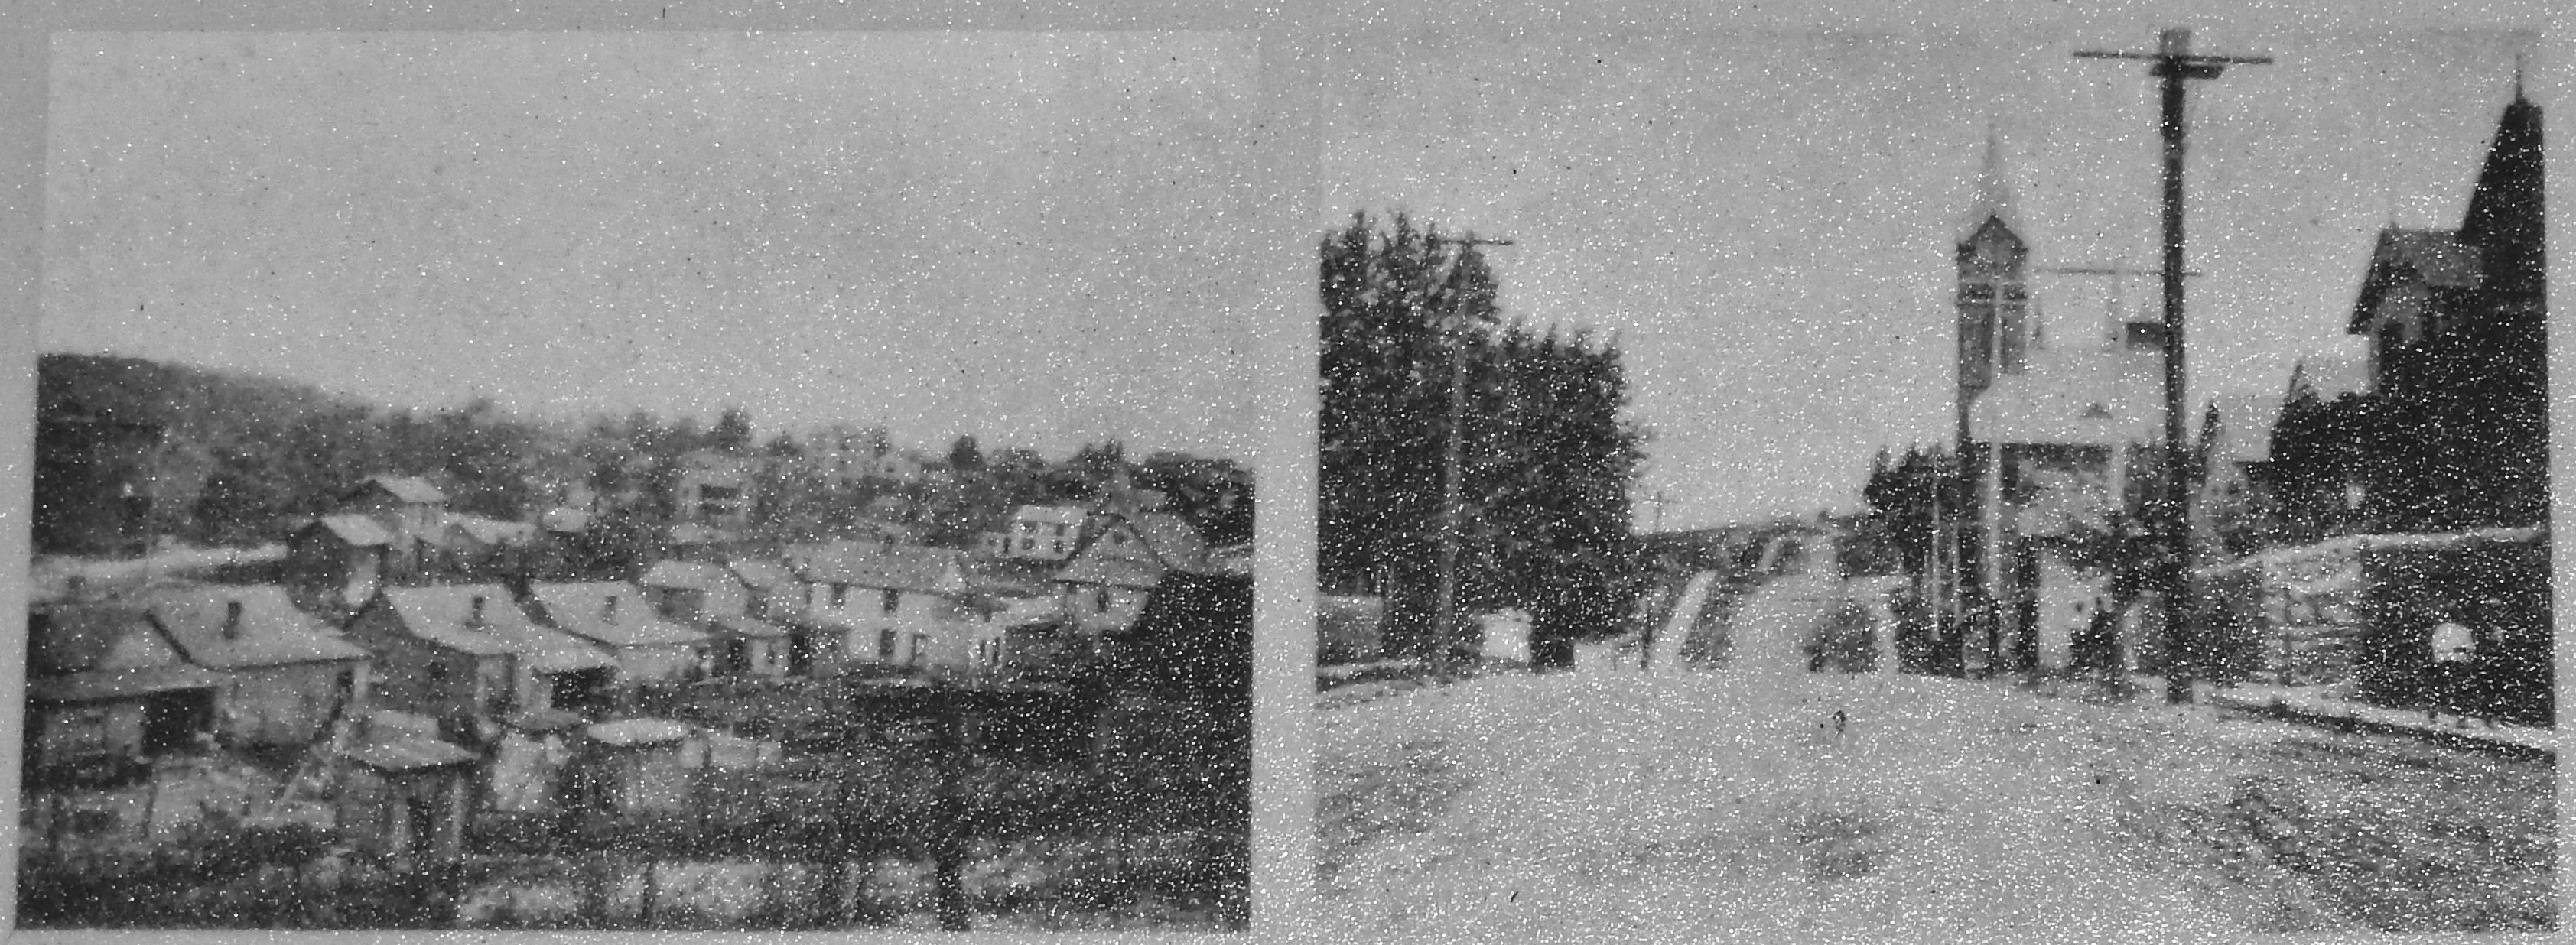 Marker detail: Views of the area from the 1907 City of Roanoke Nolen Plan